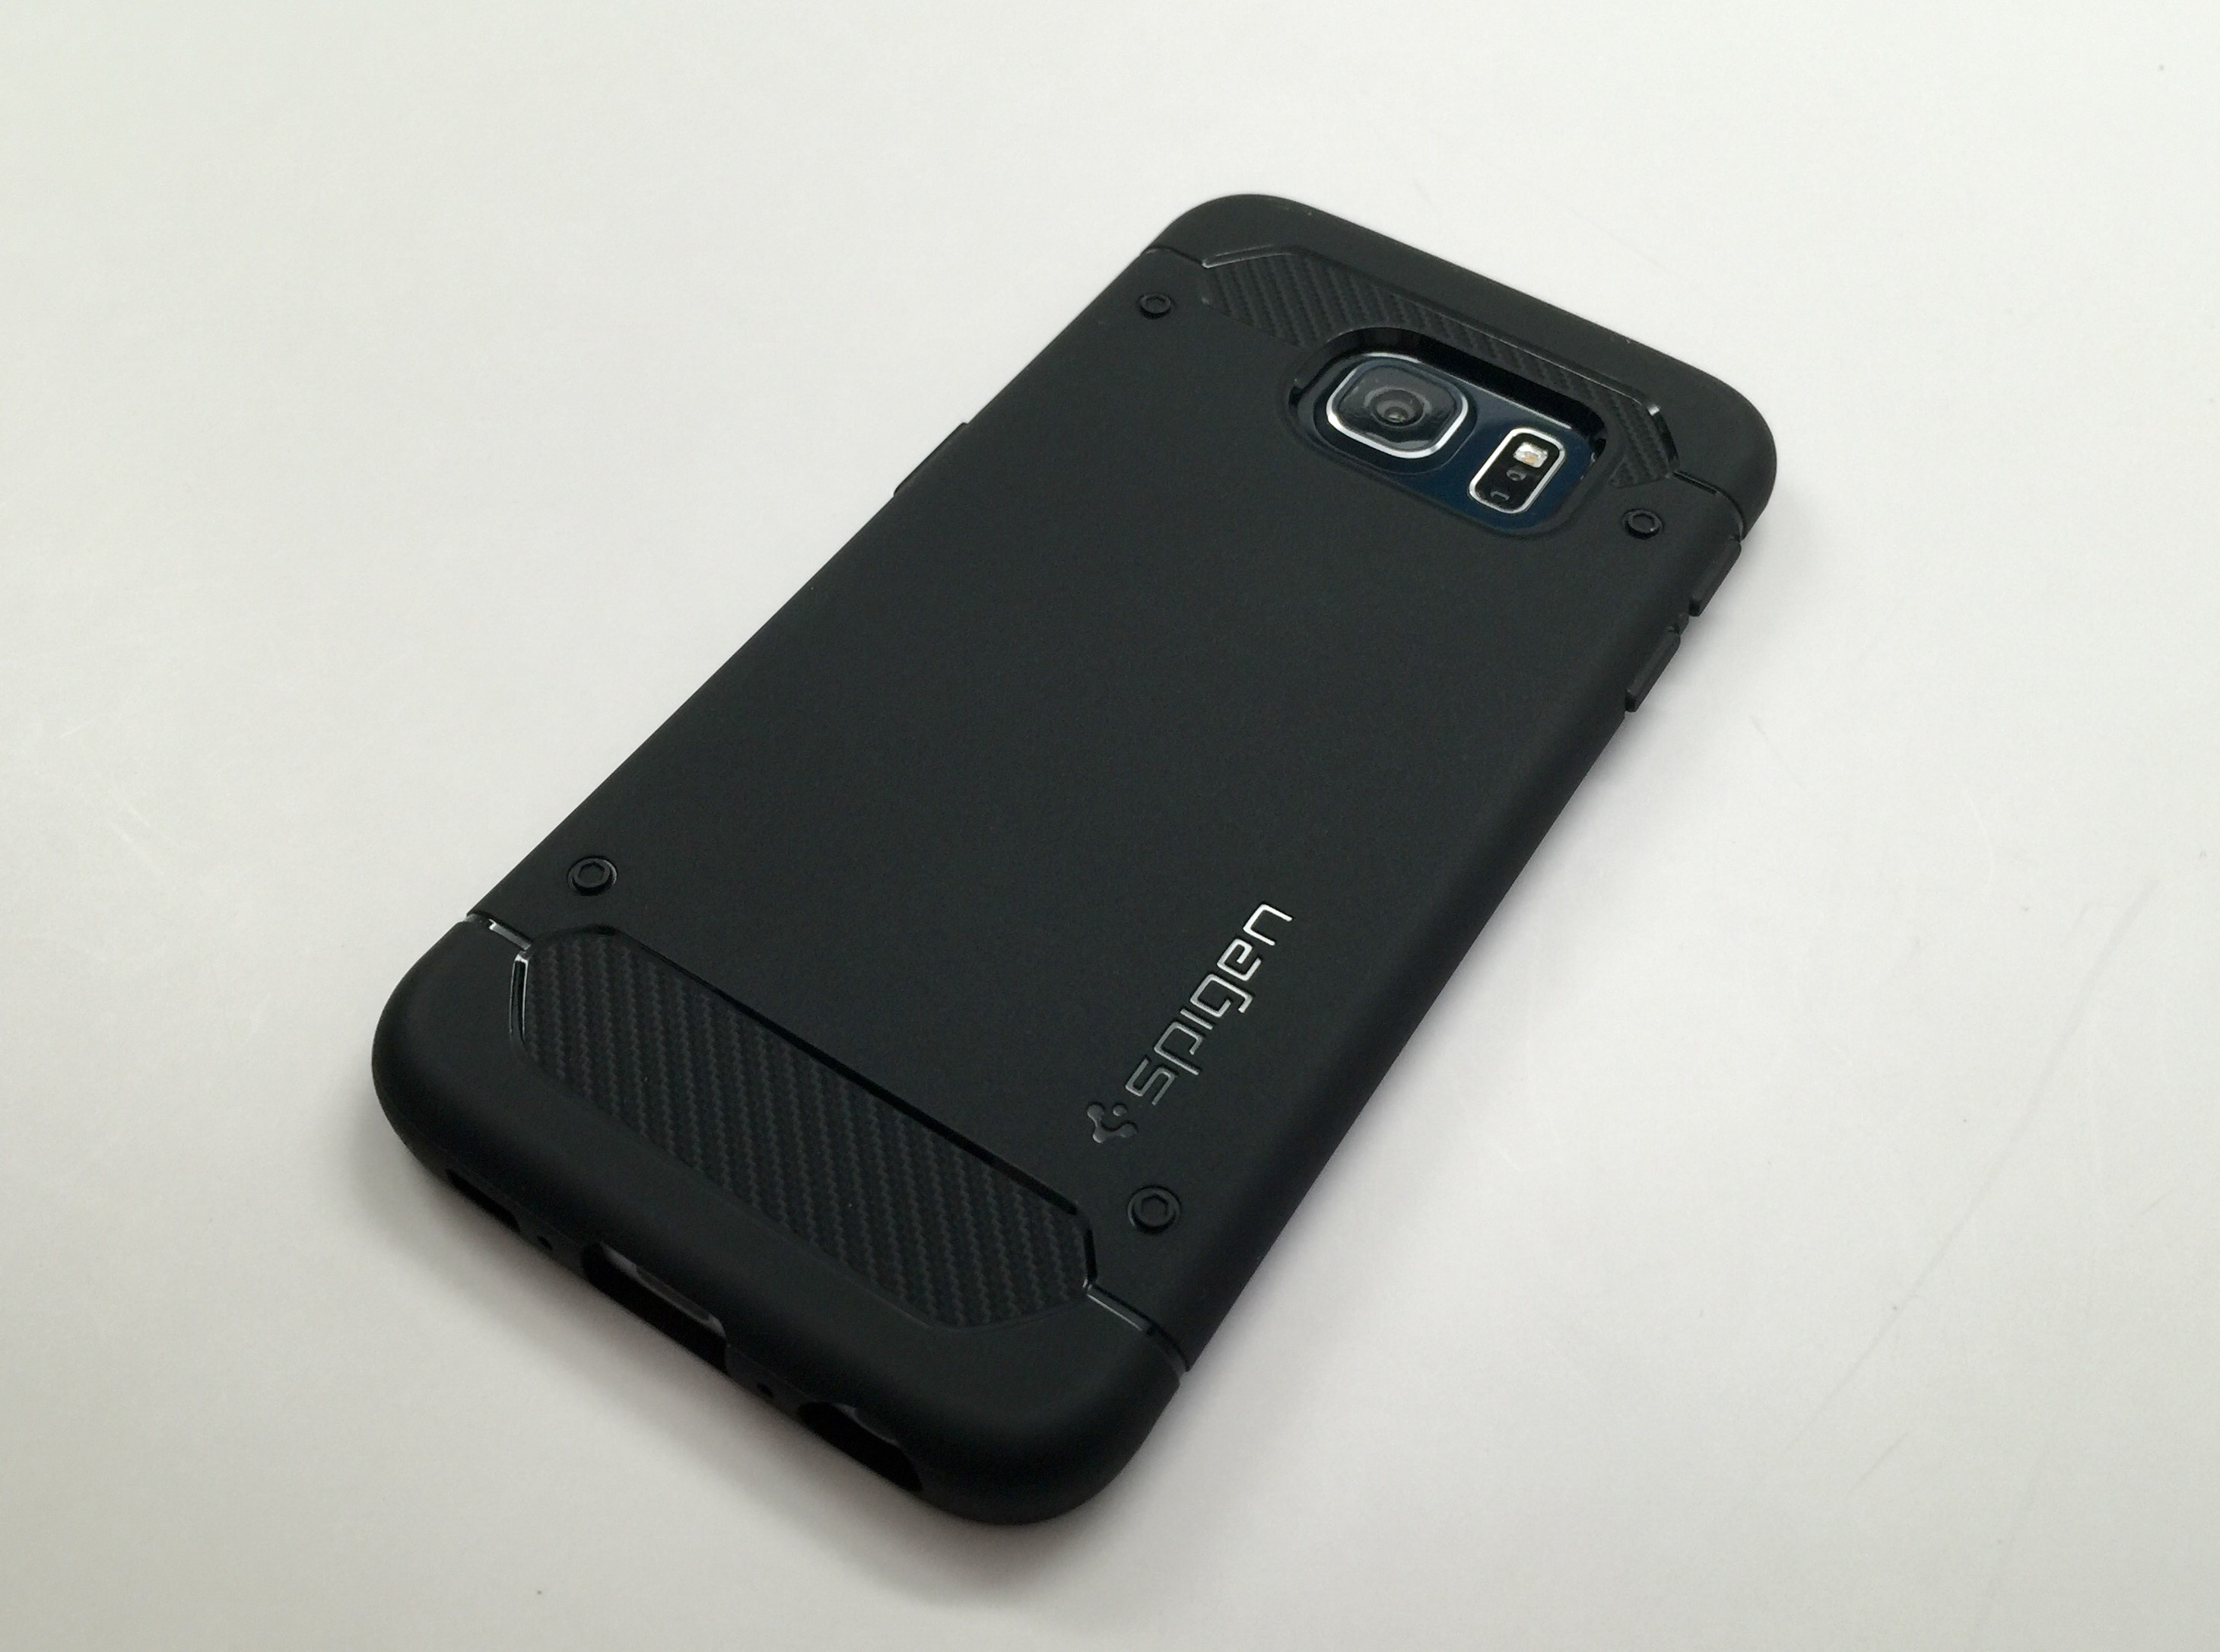 detailed look 30b18 77fb2 Spigen Capsule Ultra Rugged Galaxy S6 Edge Case Review